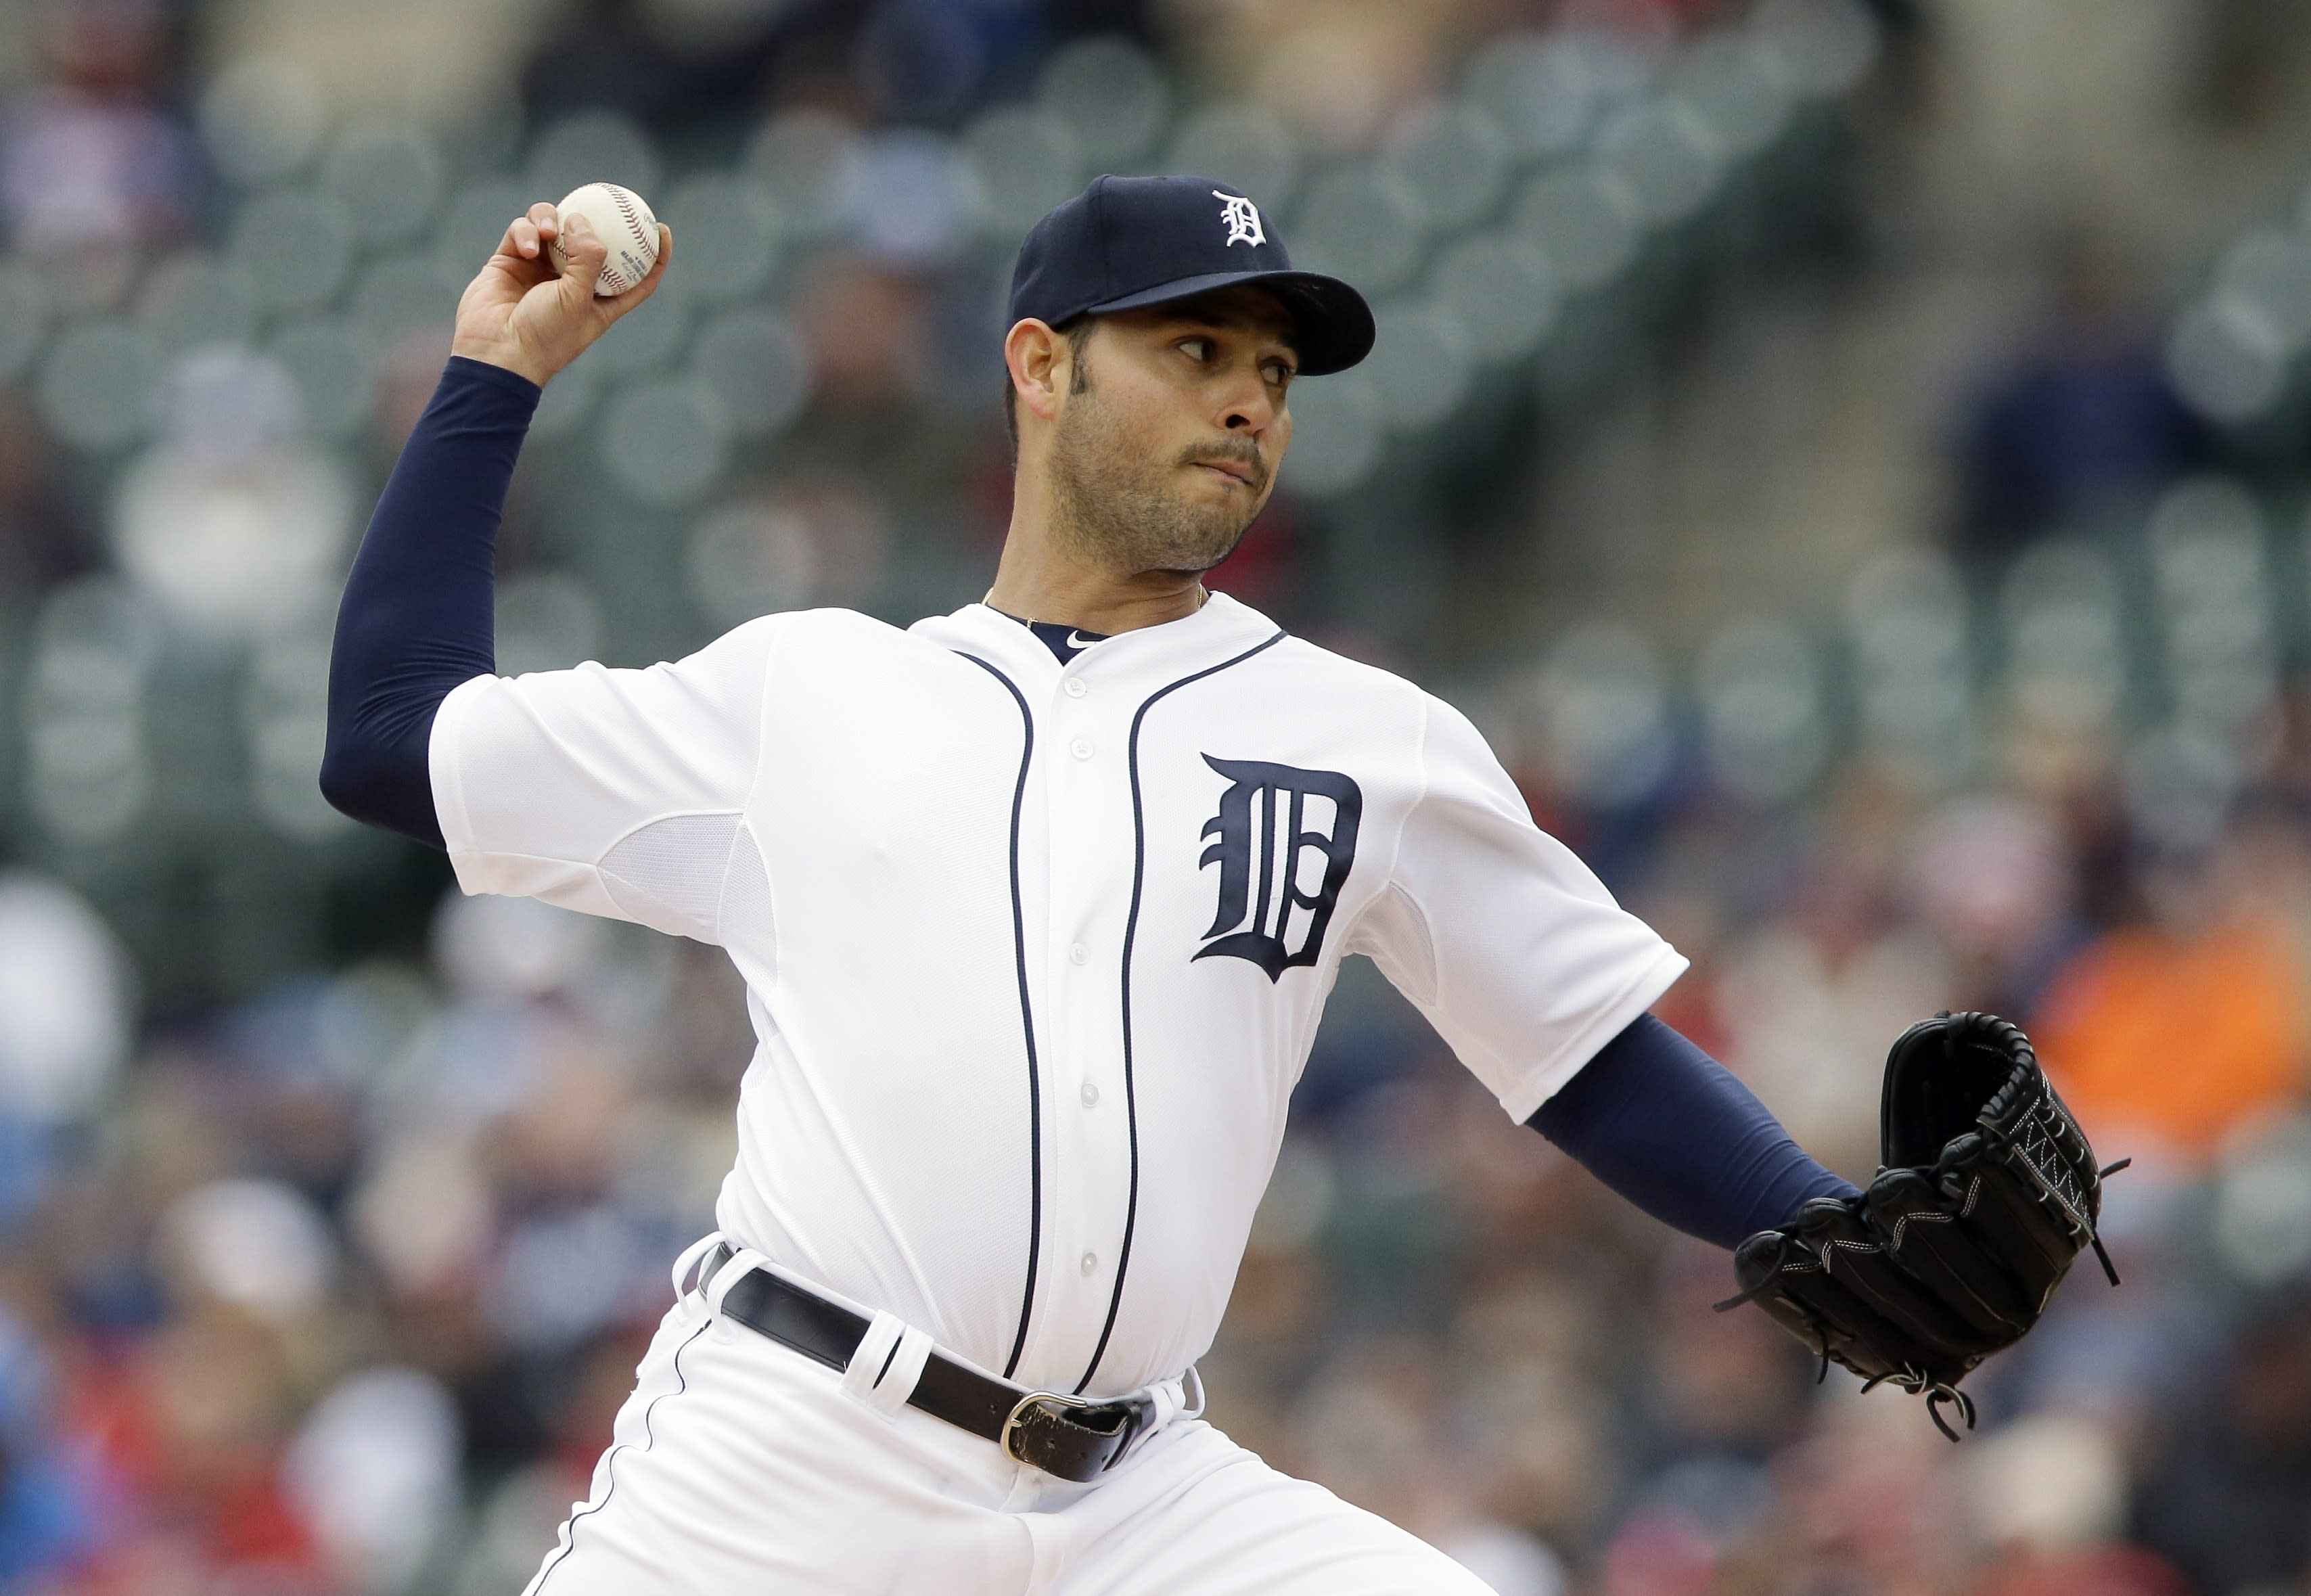 Good pitching, not enough hitting in Tigers' 2-1 loss